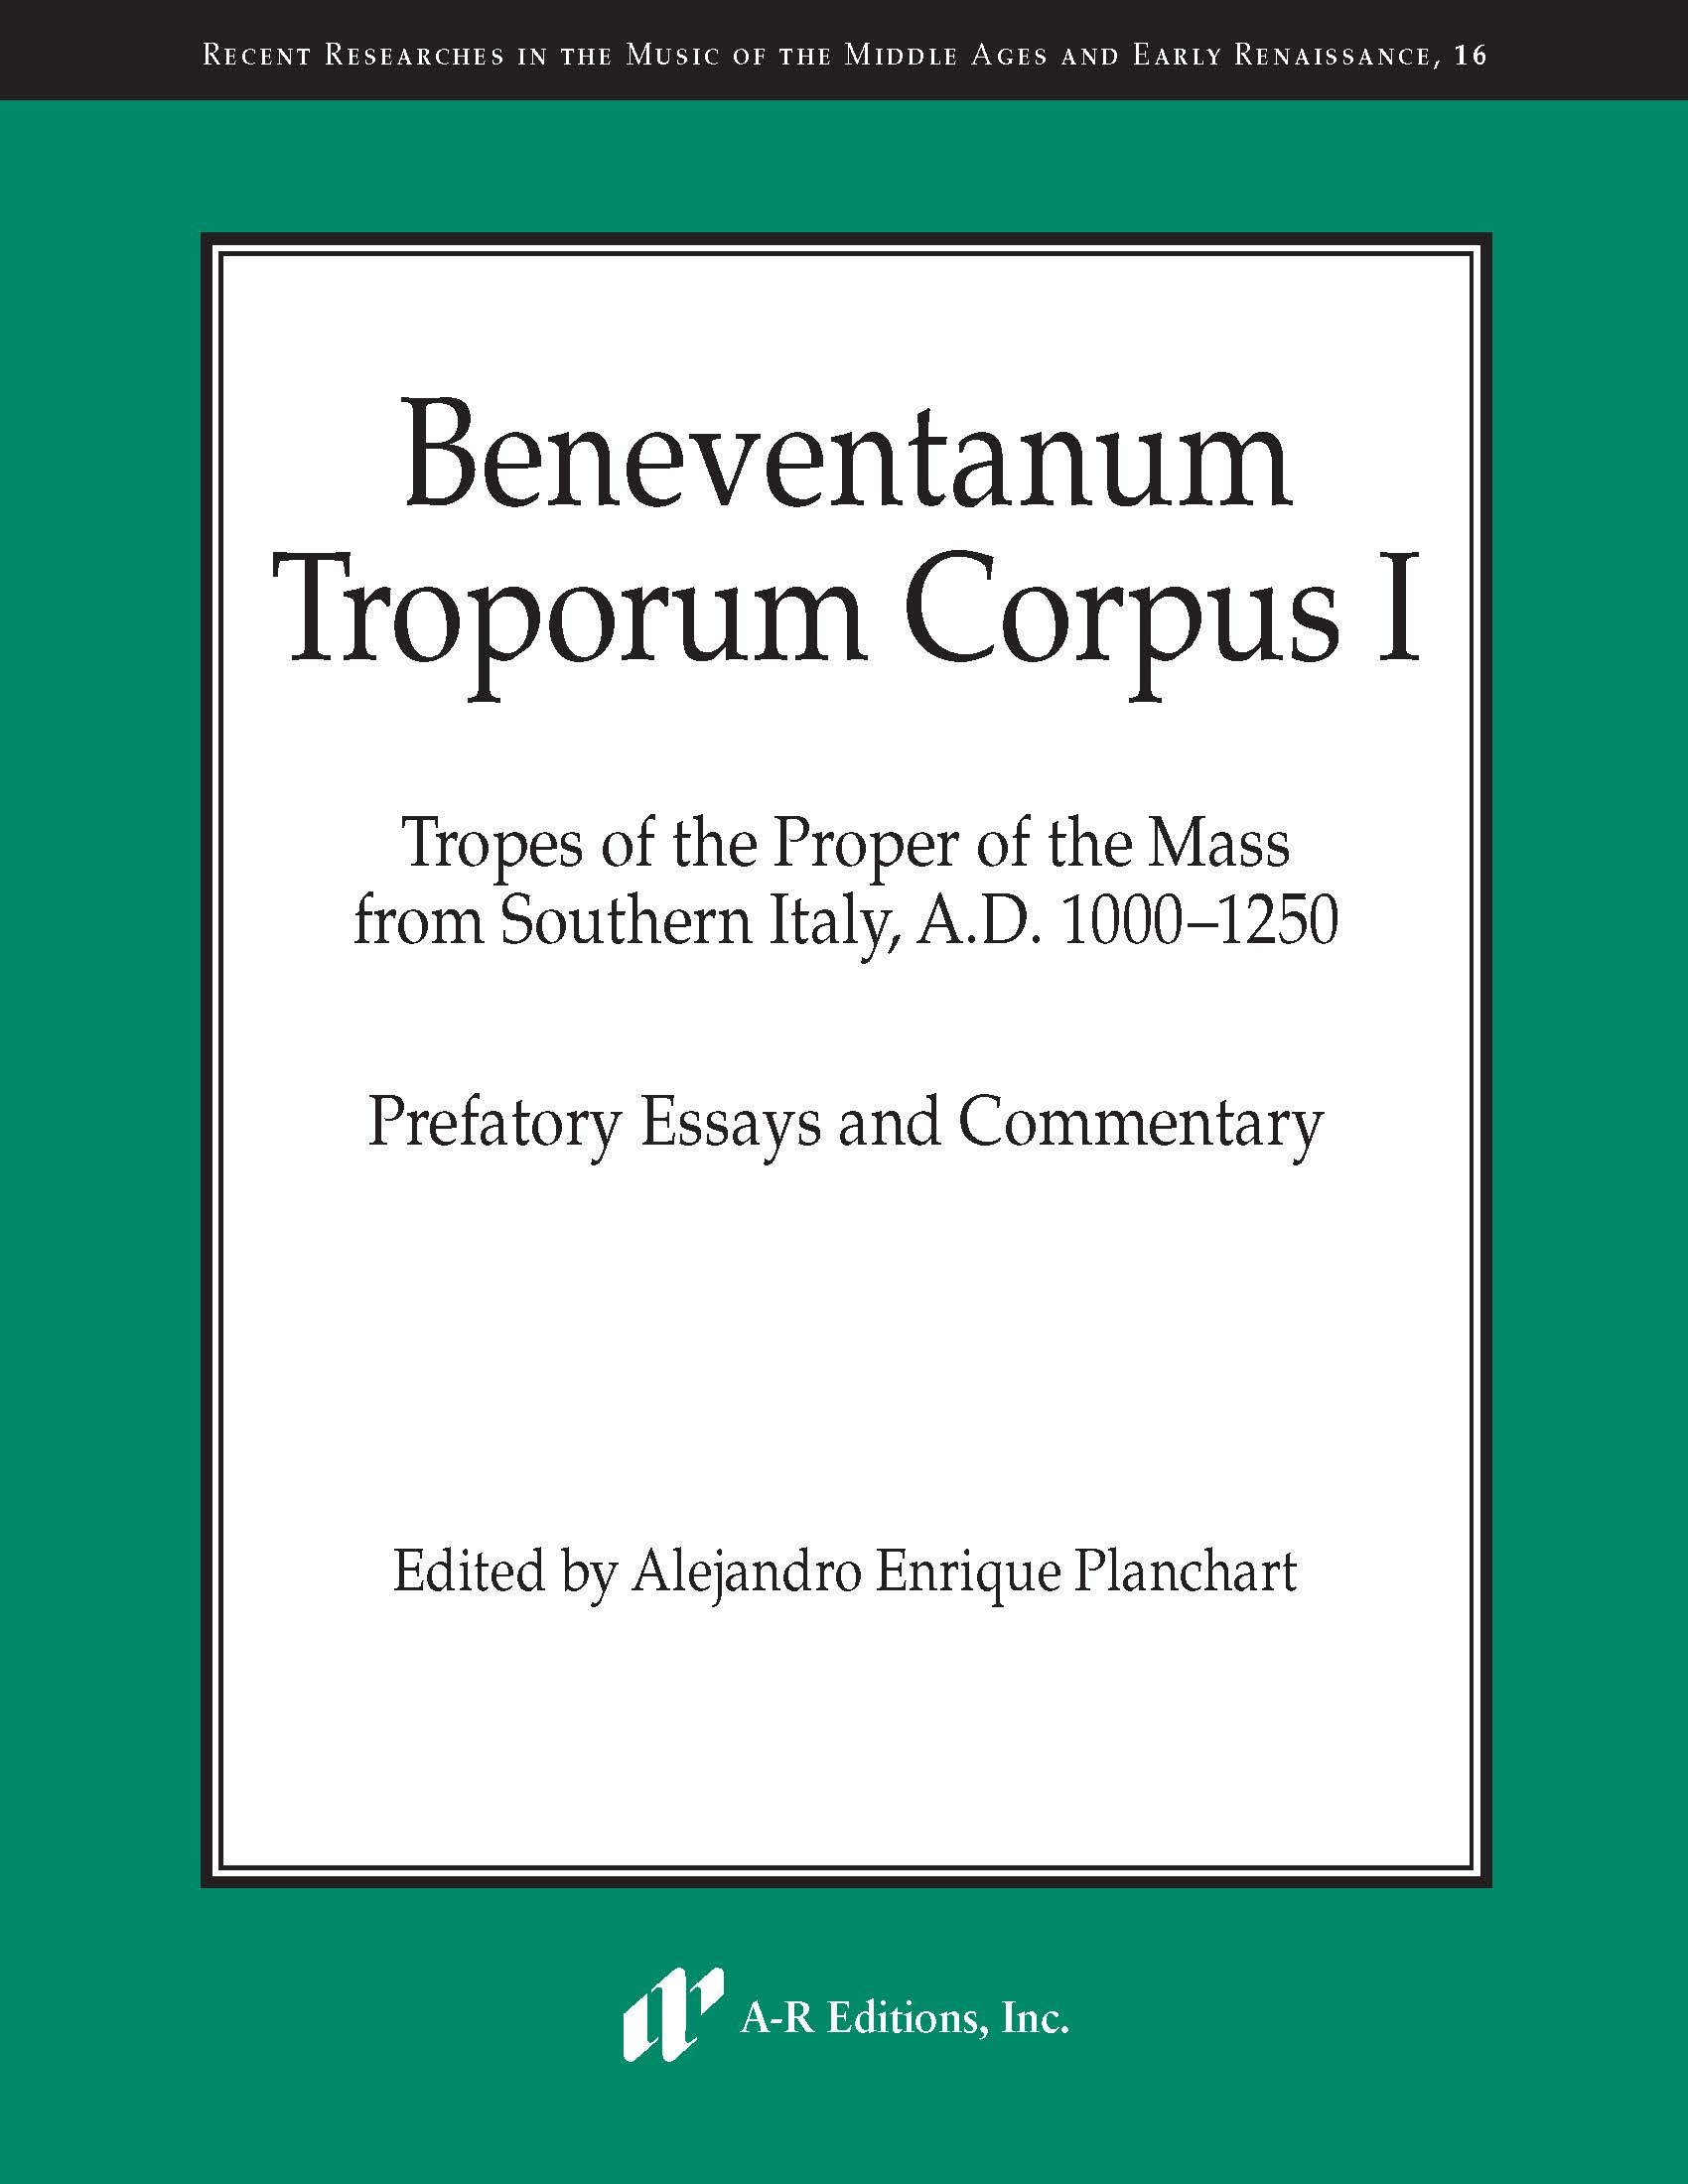 Beneventanum Troporum Corpus I, Part 1